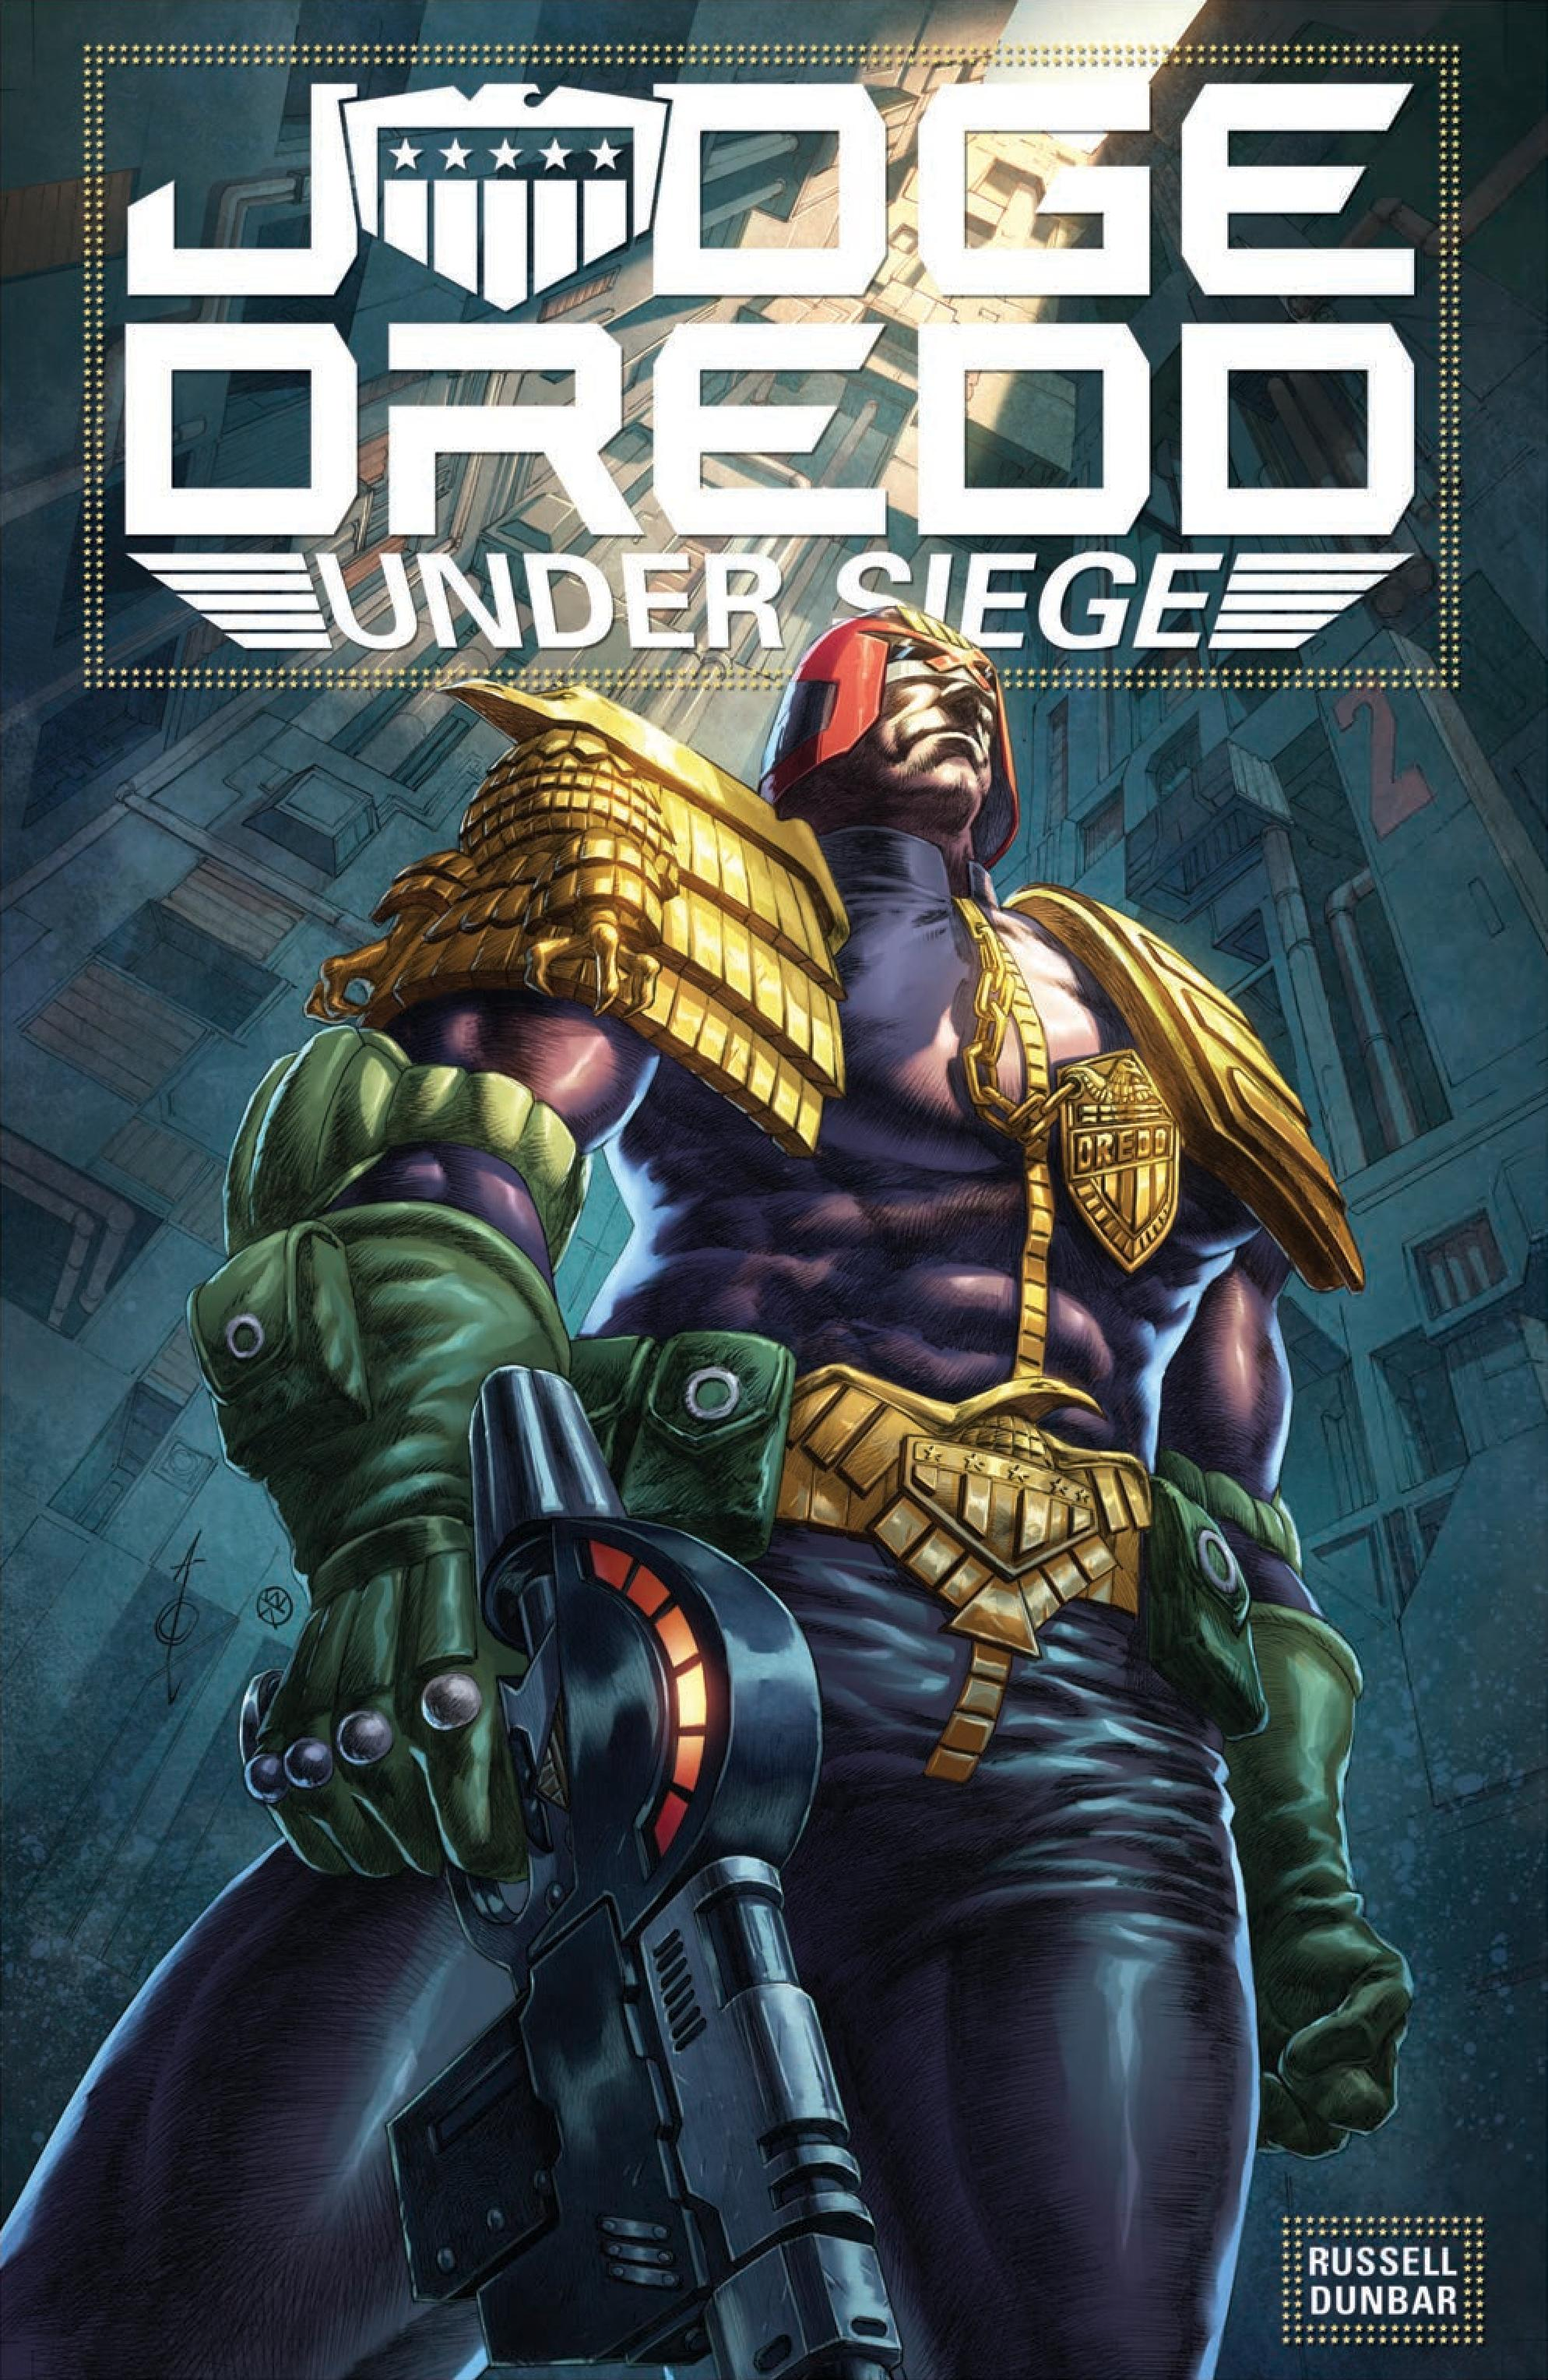 Judge Dredd and Judge Beeny are sent in to investigate a block where they discover a threat to Mega-City One that they must contain at all costs.